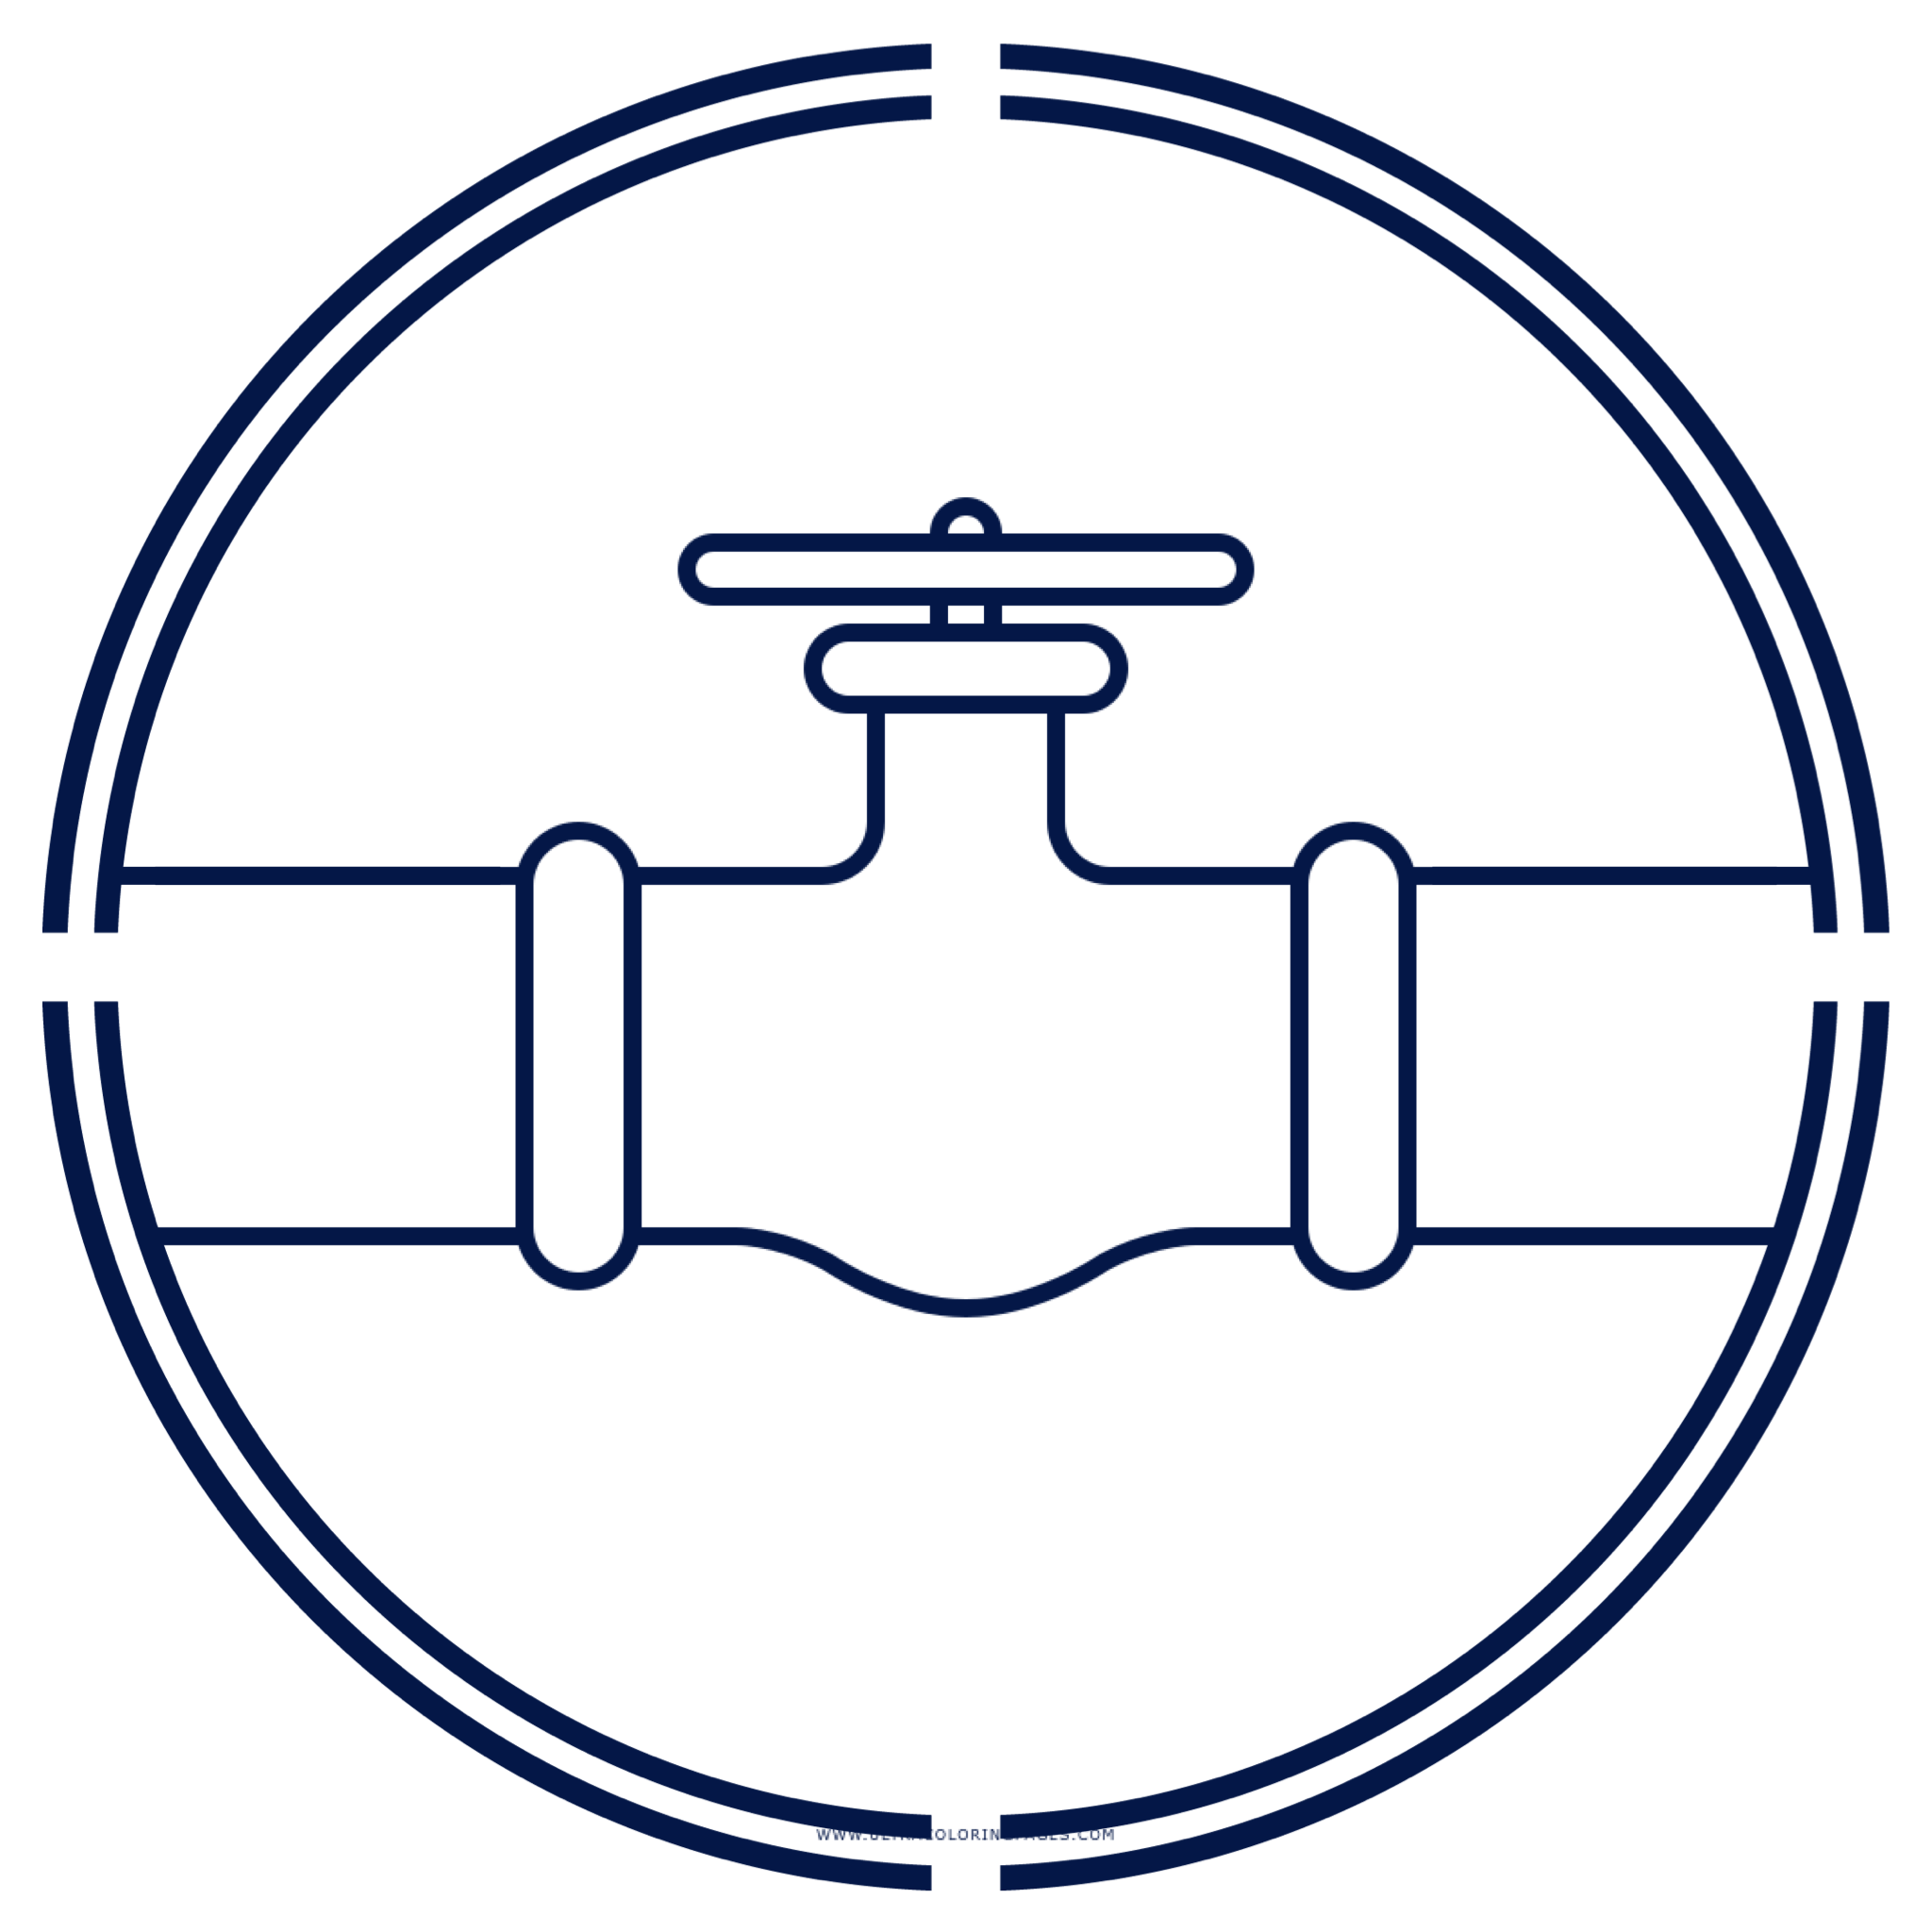 pipe icon navy.png